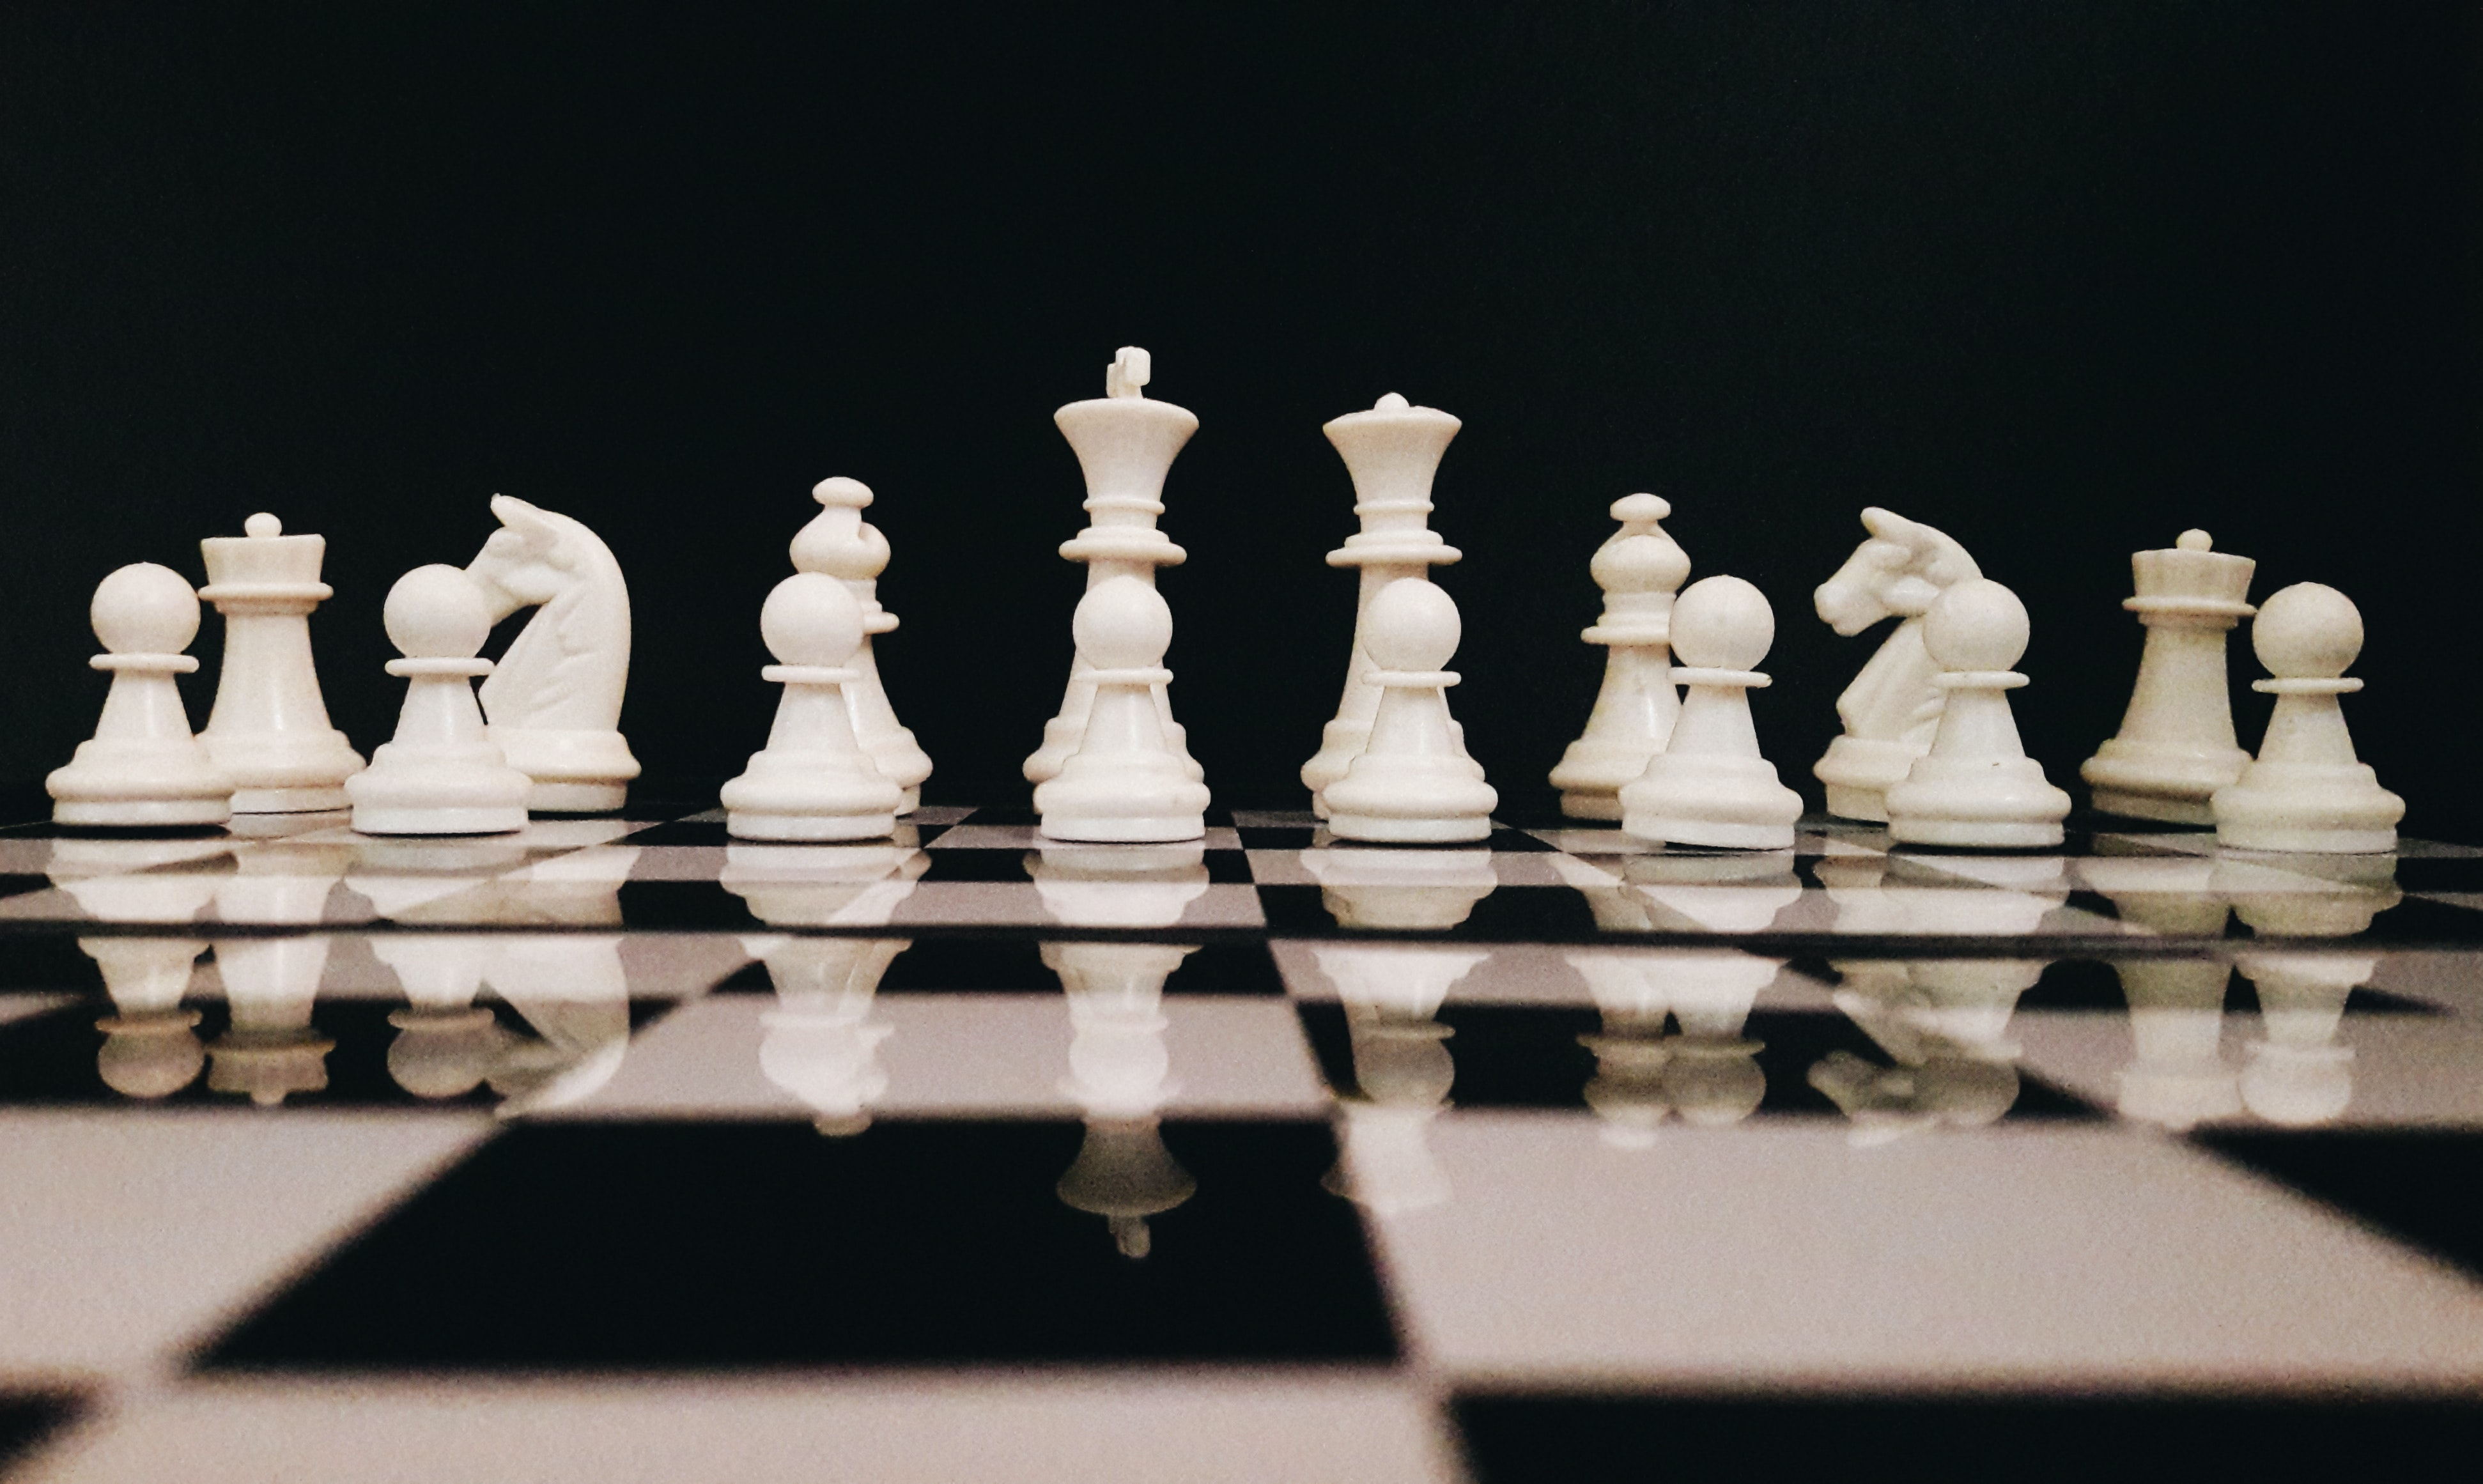 white-chess-piece-on-top-of-chess-board-